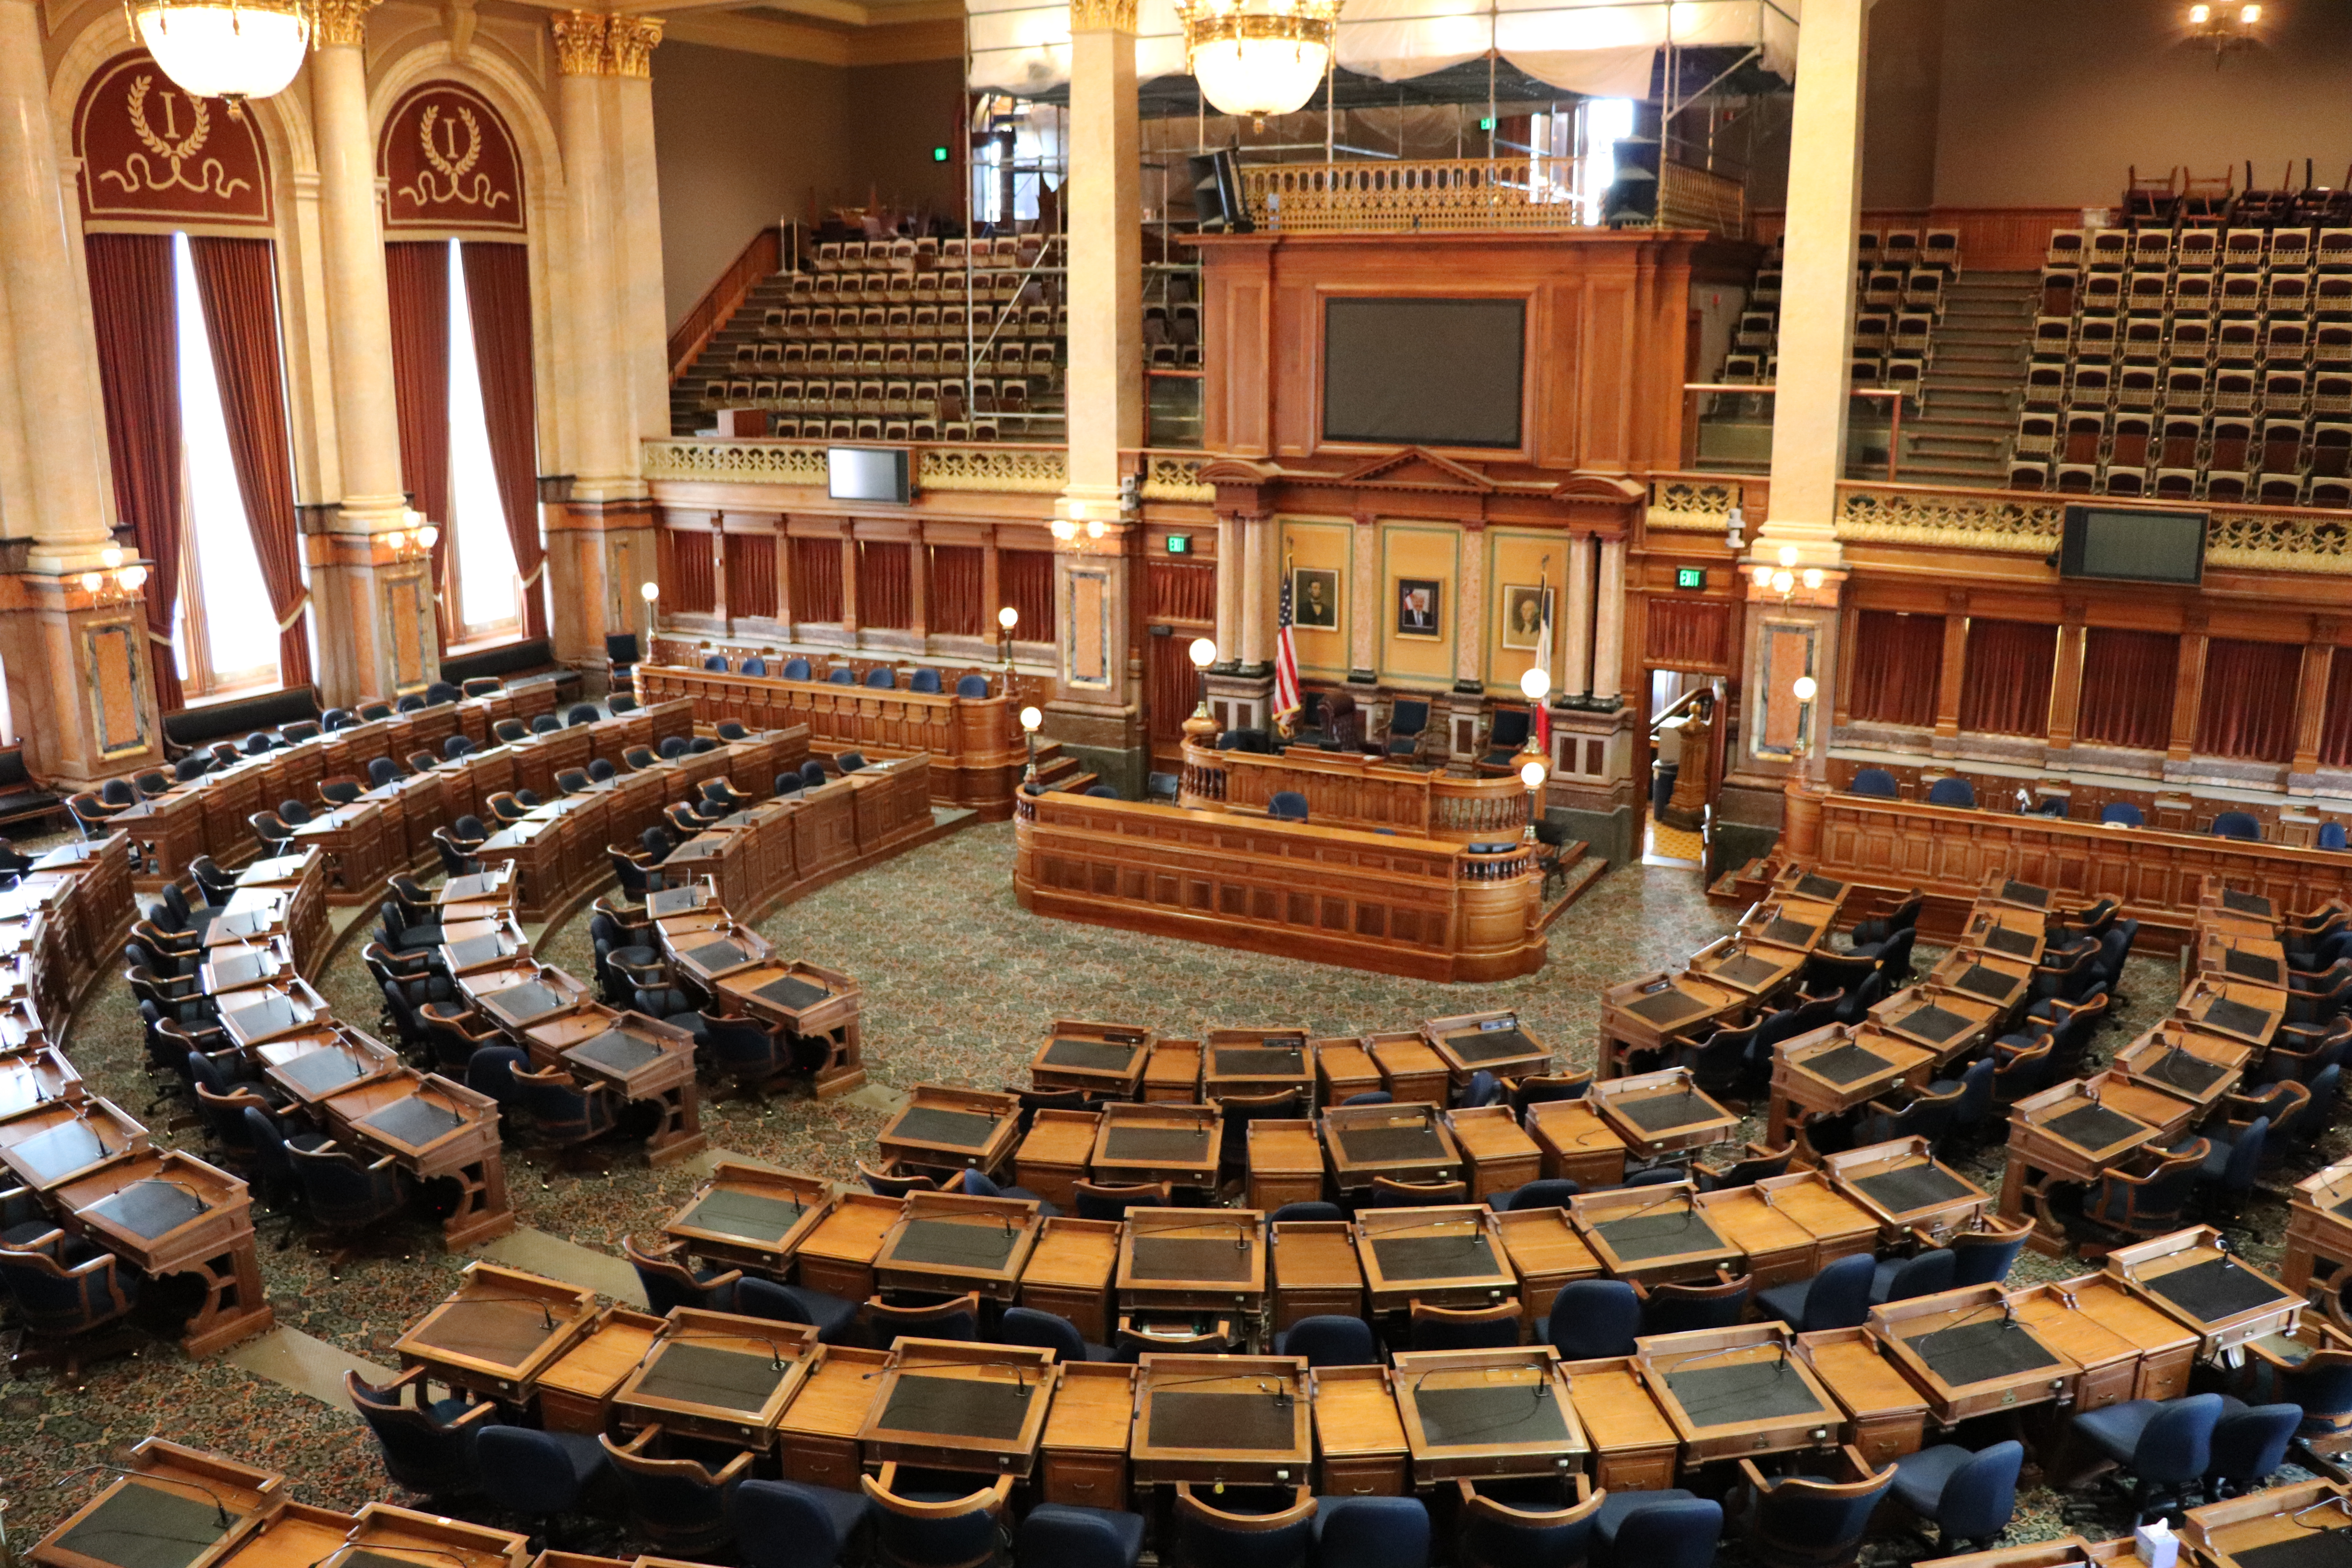 The chamber of the Iowa House of Representatives